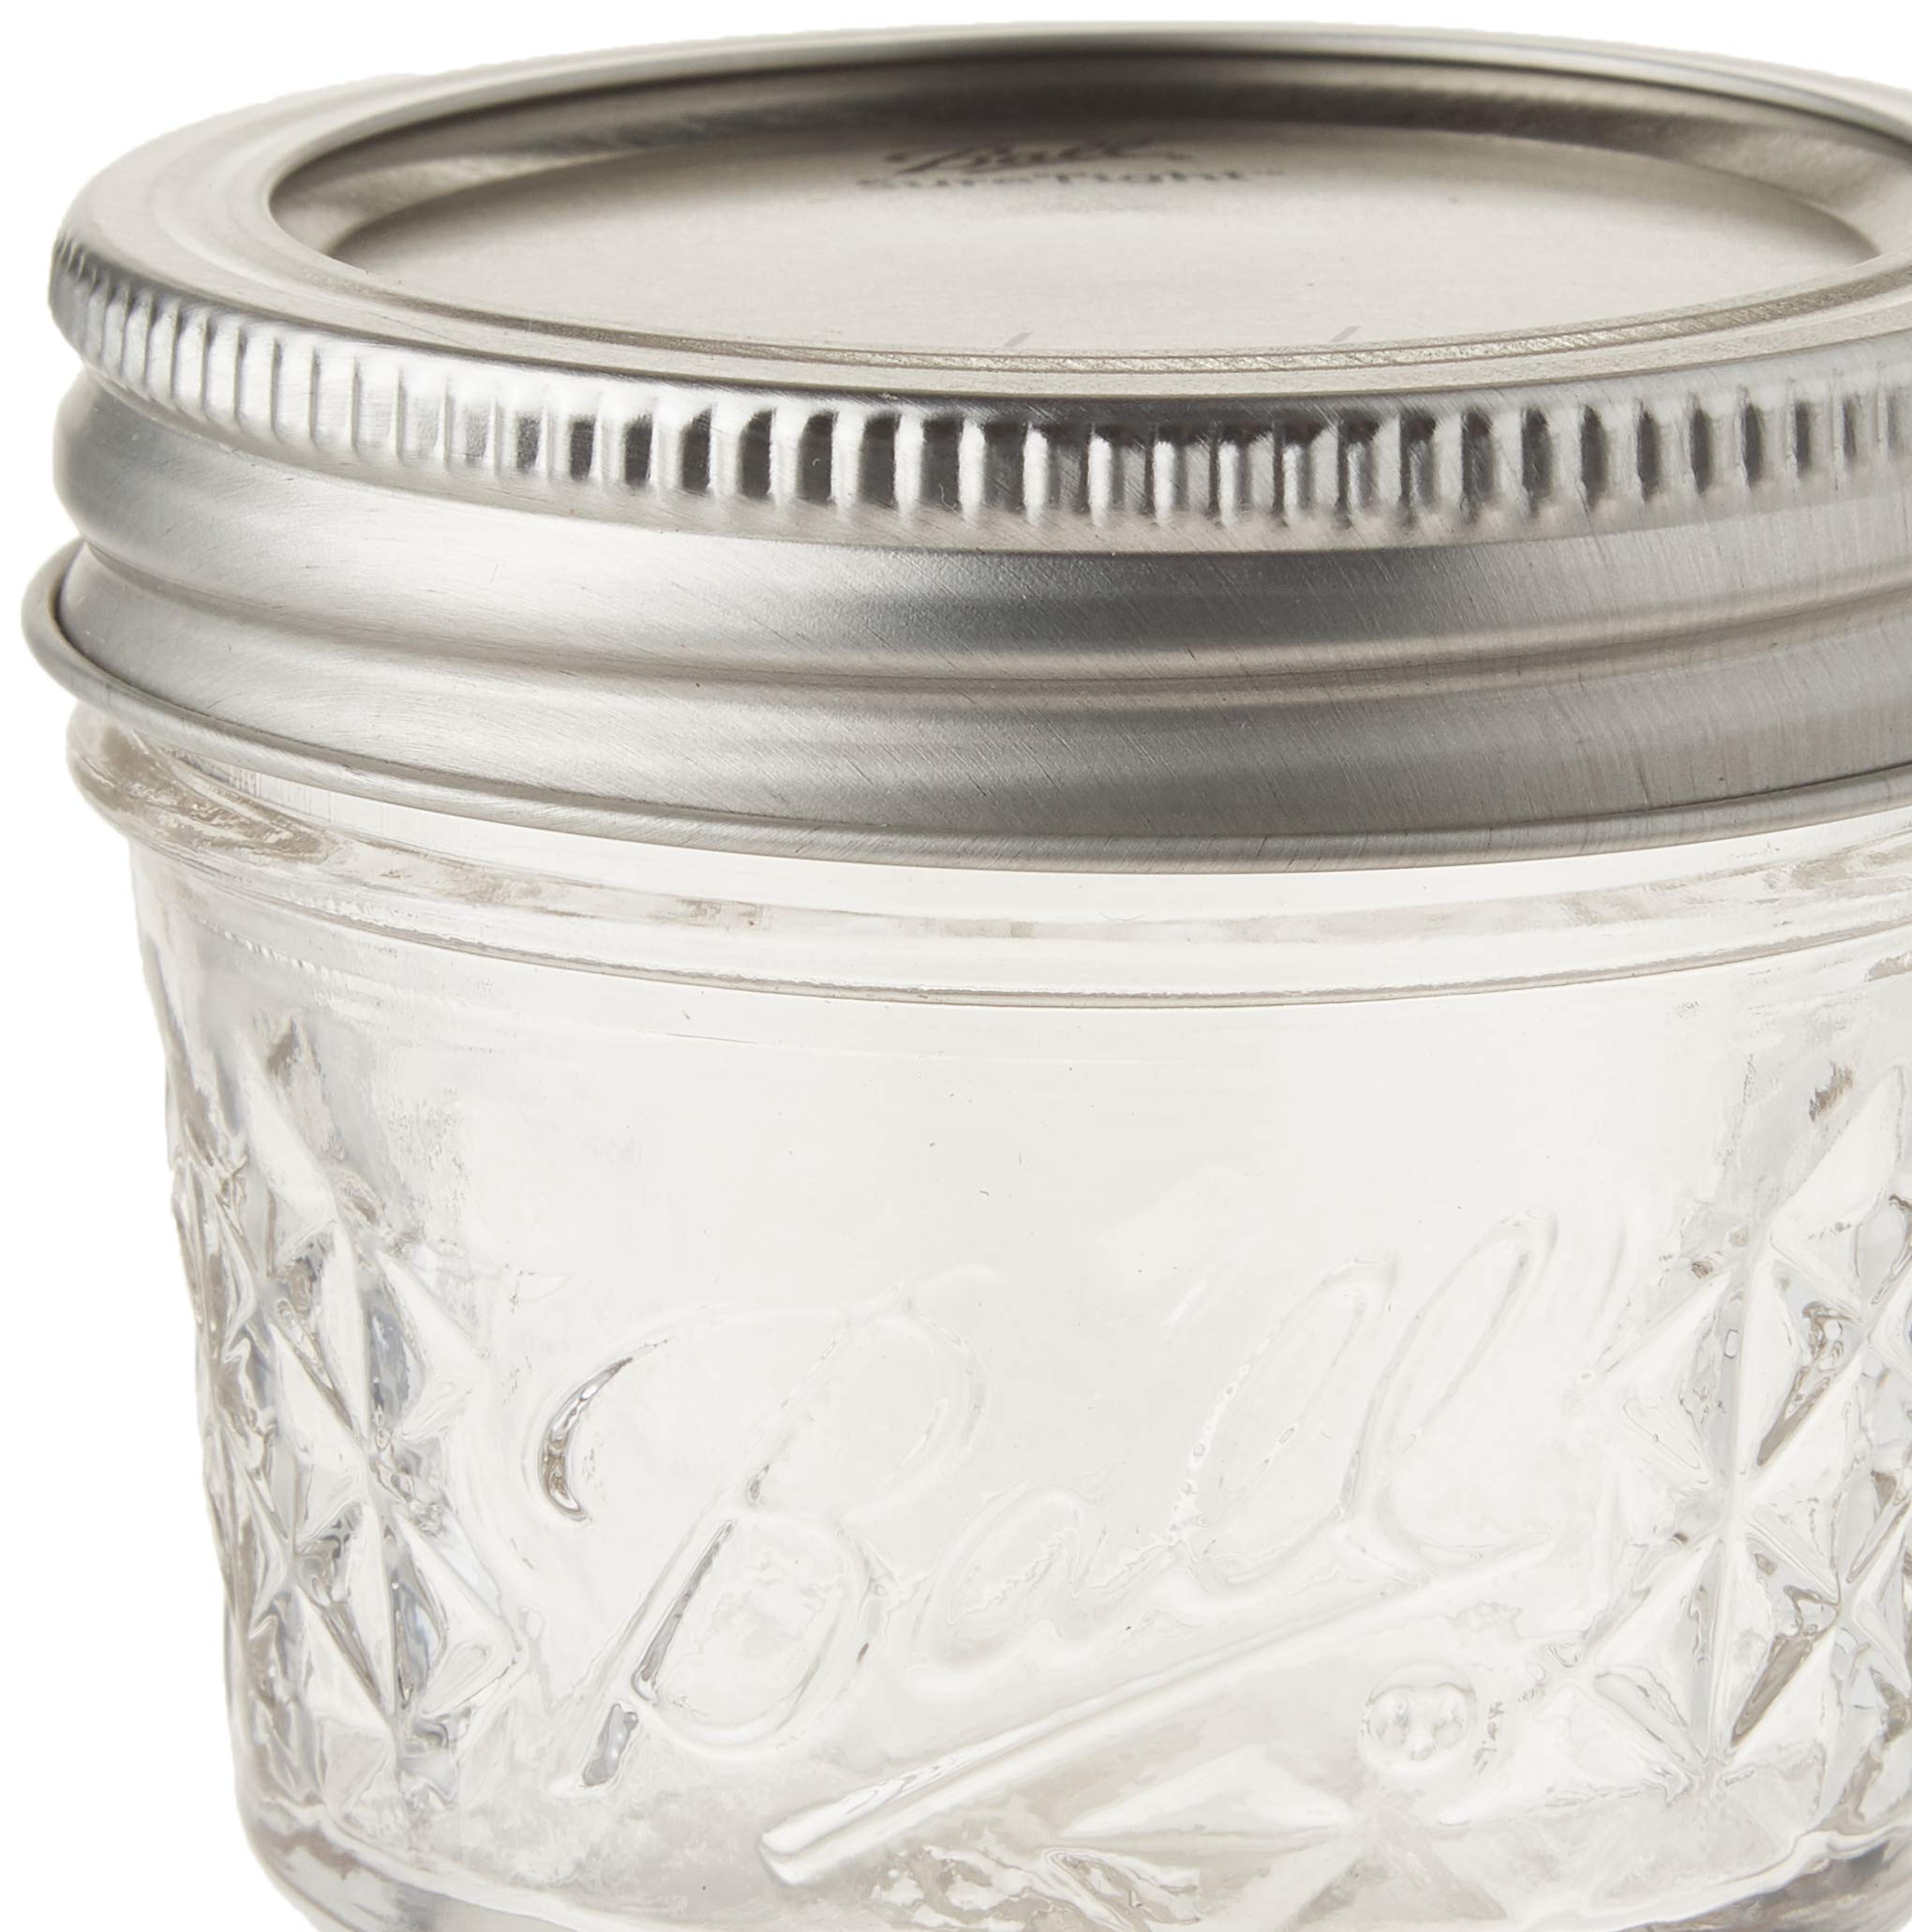 Ball 4-Ounce Quilted Crystal Jelly Jars with Lids and Bands, Set of 12-2 Pack (Total 24 Jars) by Ball (Image #3)